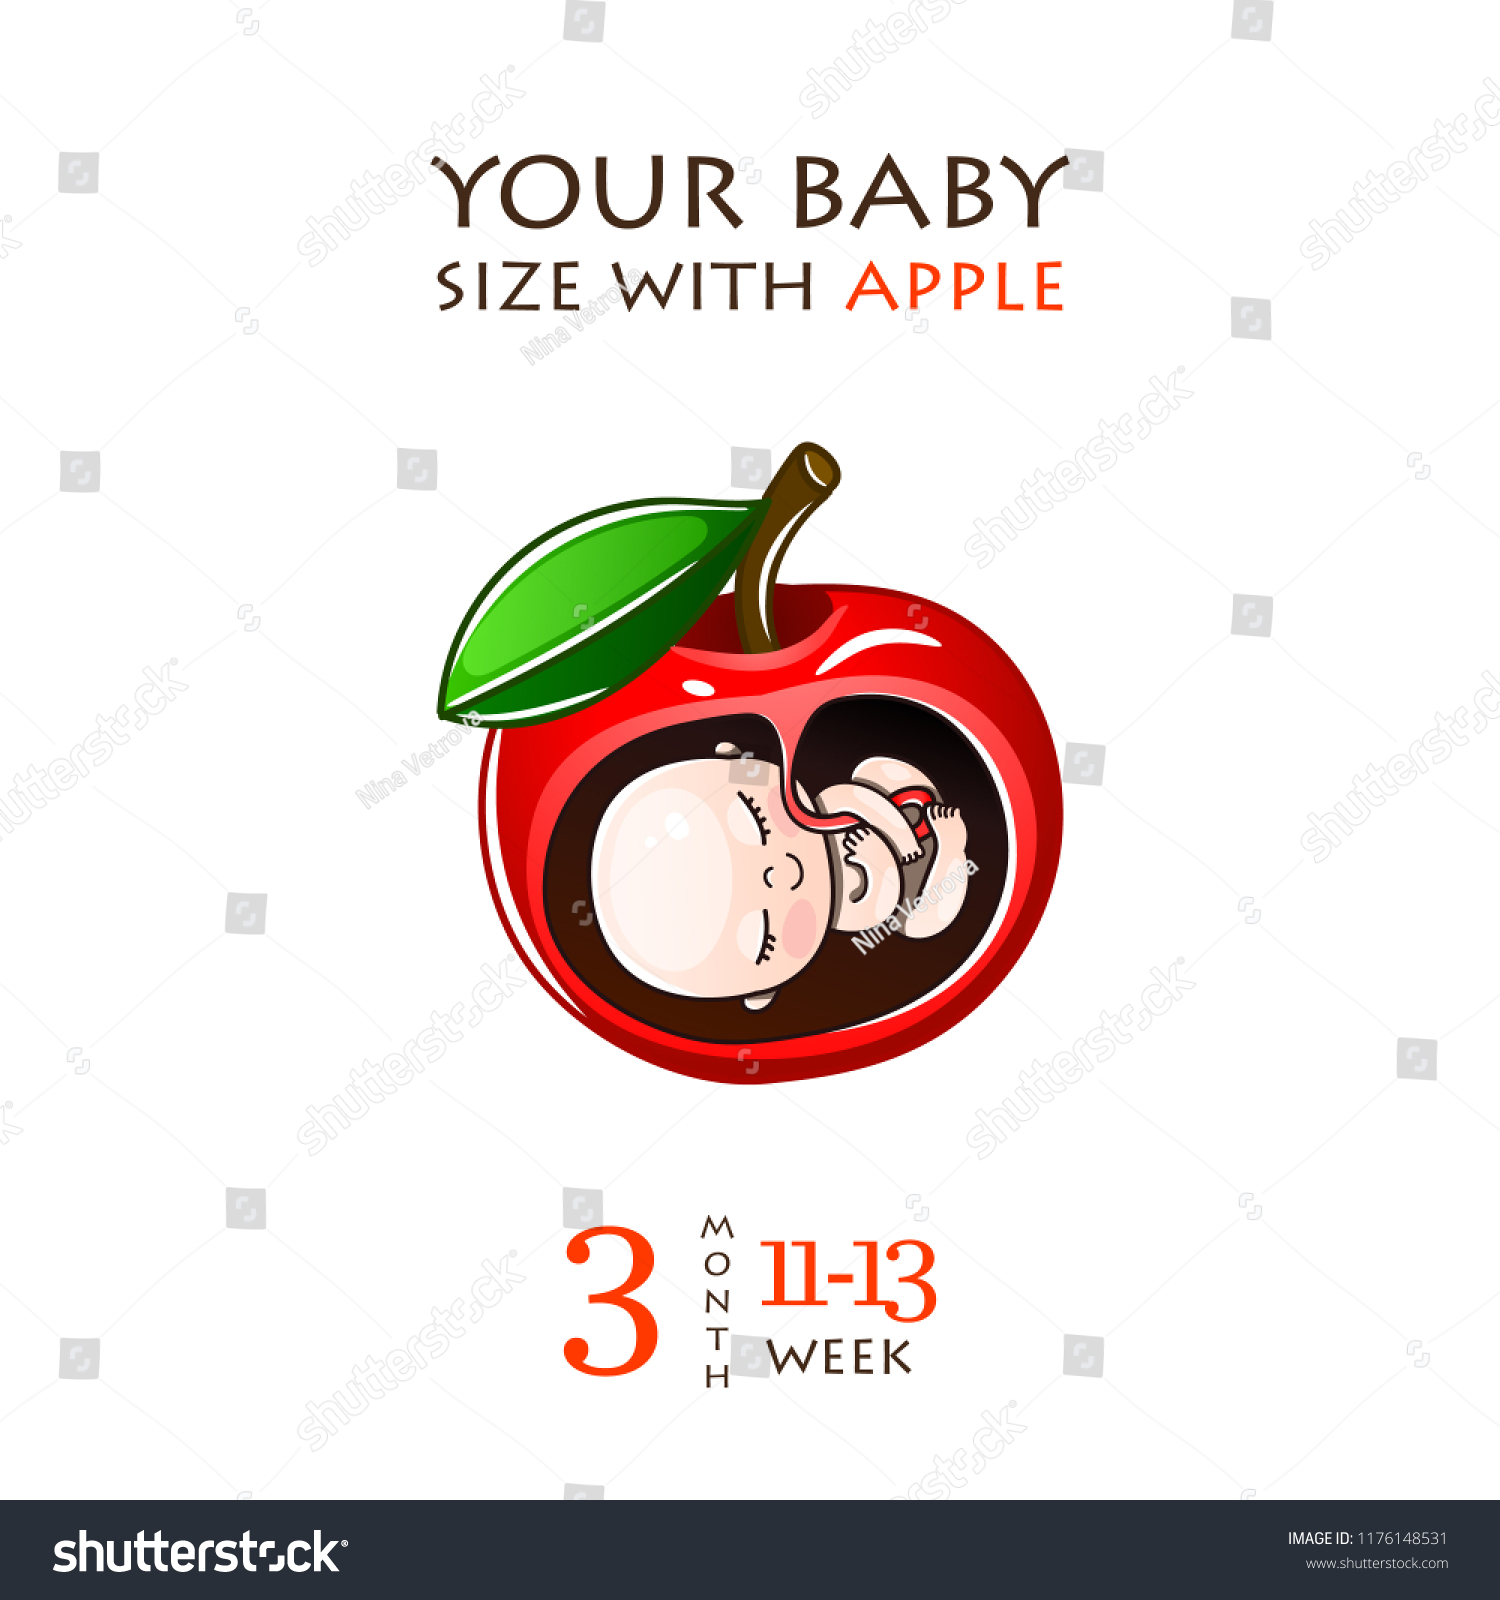 Stages Development Pregnancy Size Embryo Weeks Stock Vector